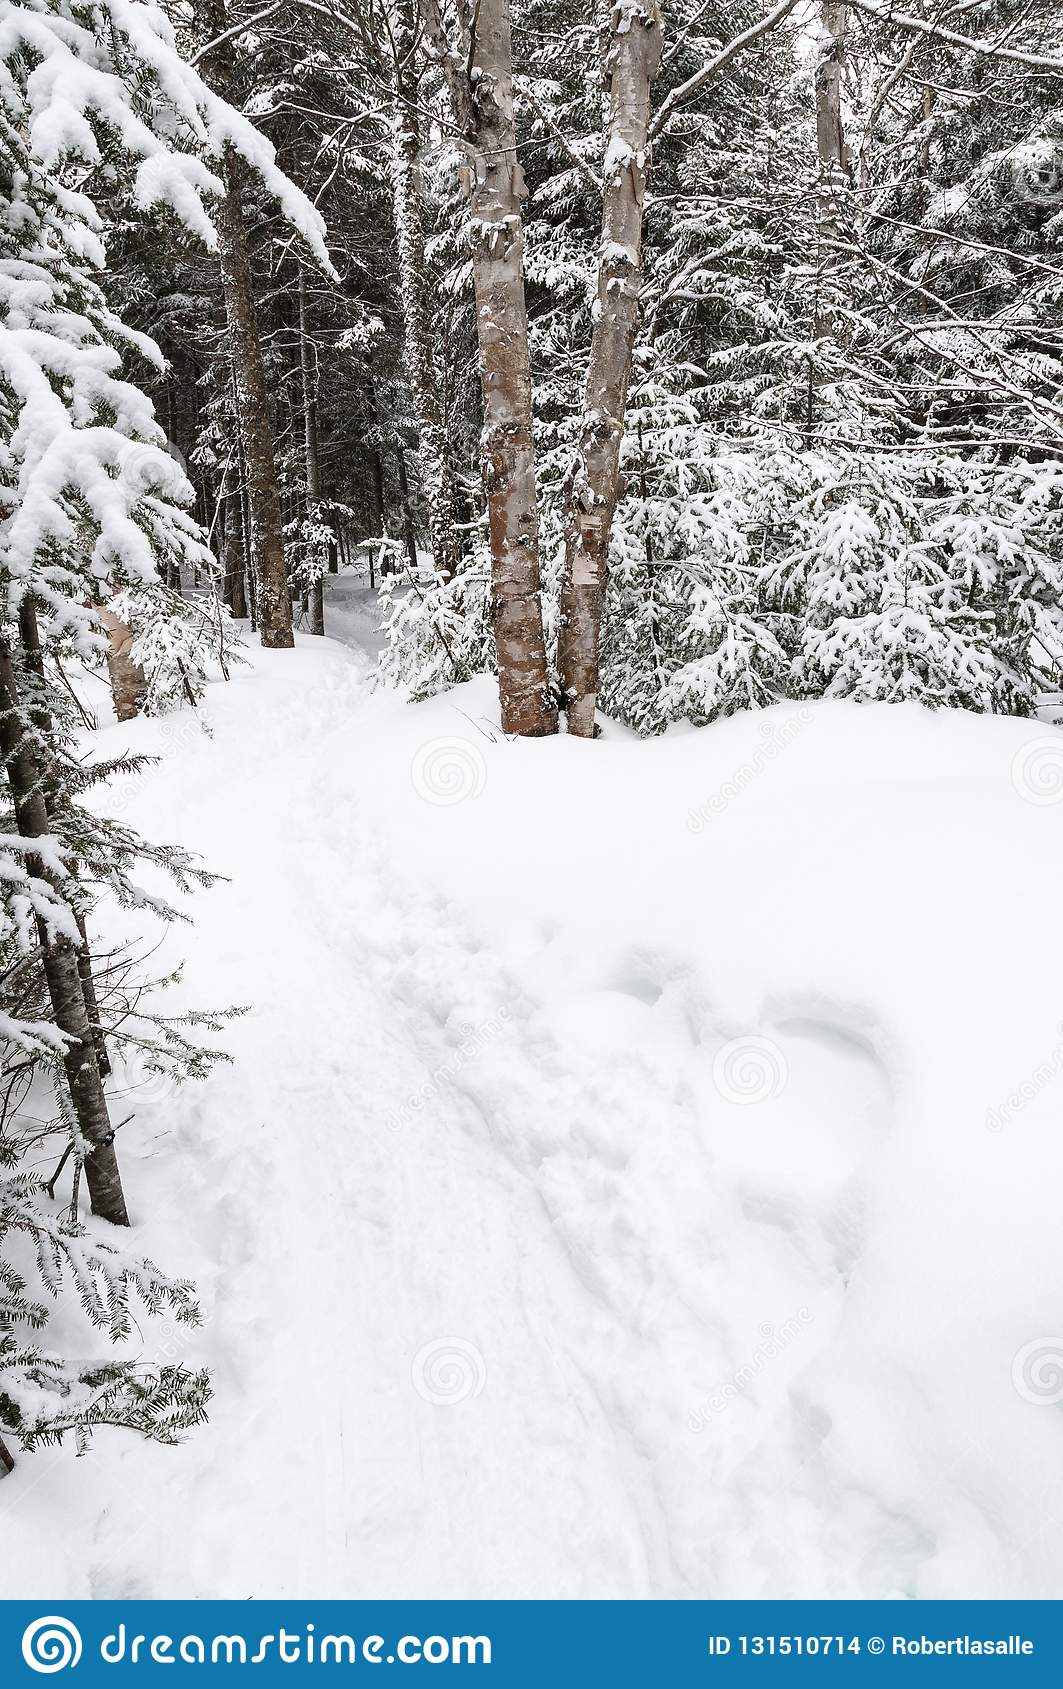 Tracks in snowshoeing trail in a national park in Canada